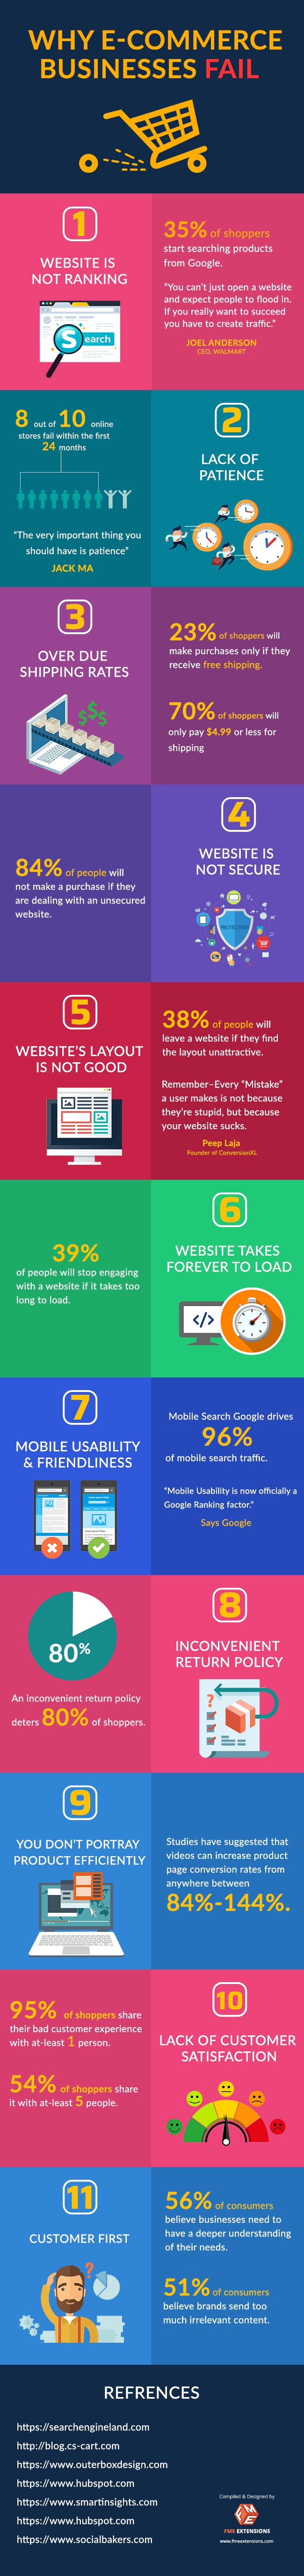 Infographic: 11 Ecommerce Website Mistakes to Avoid